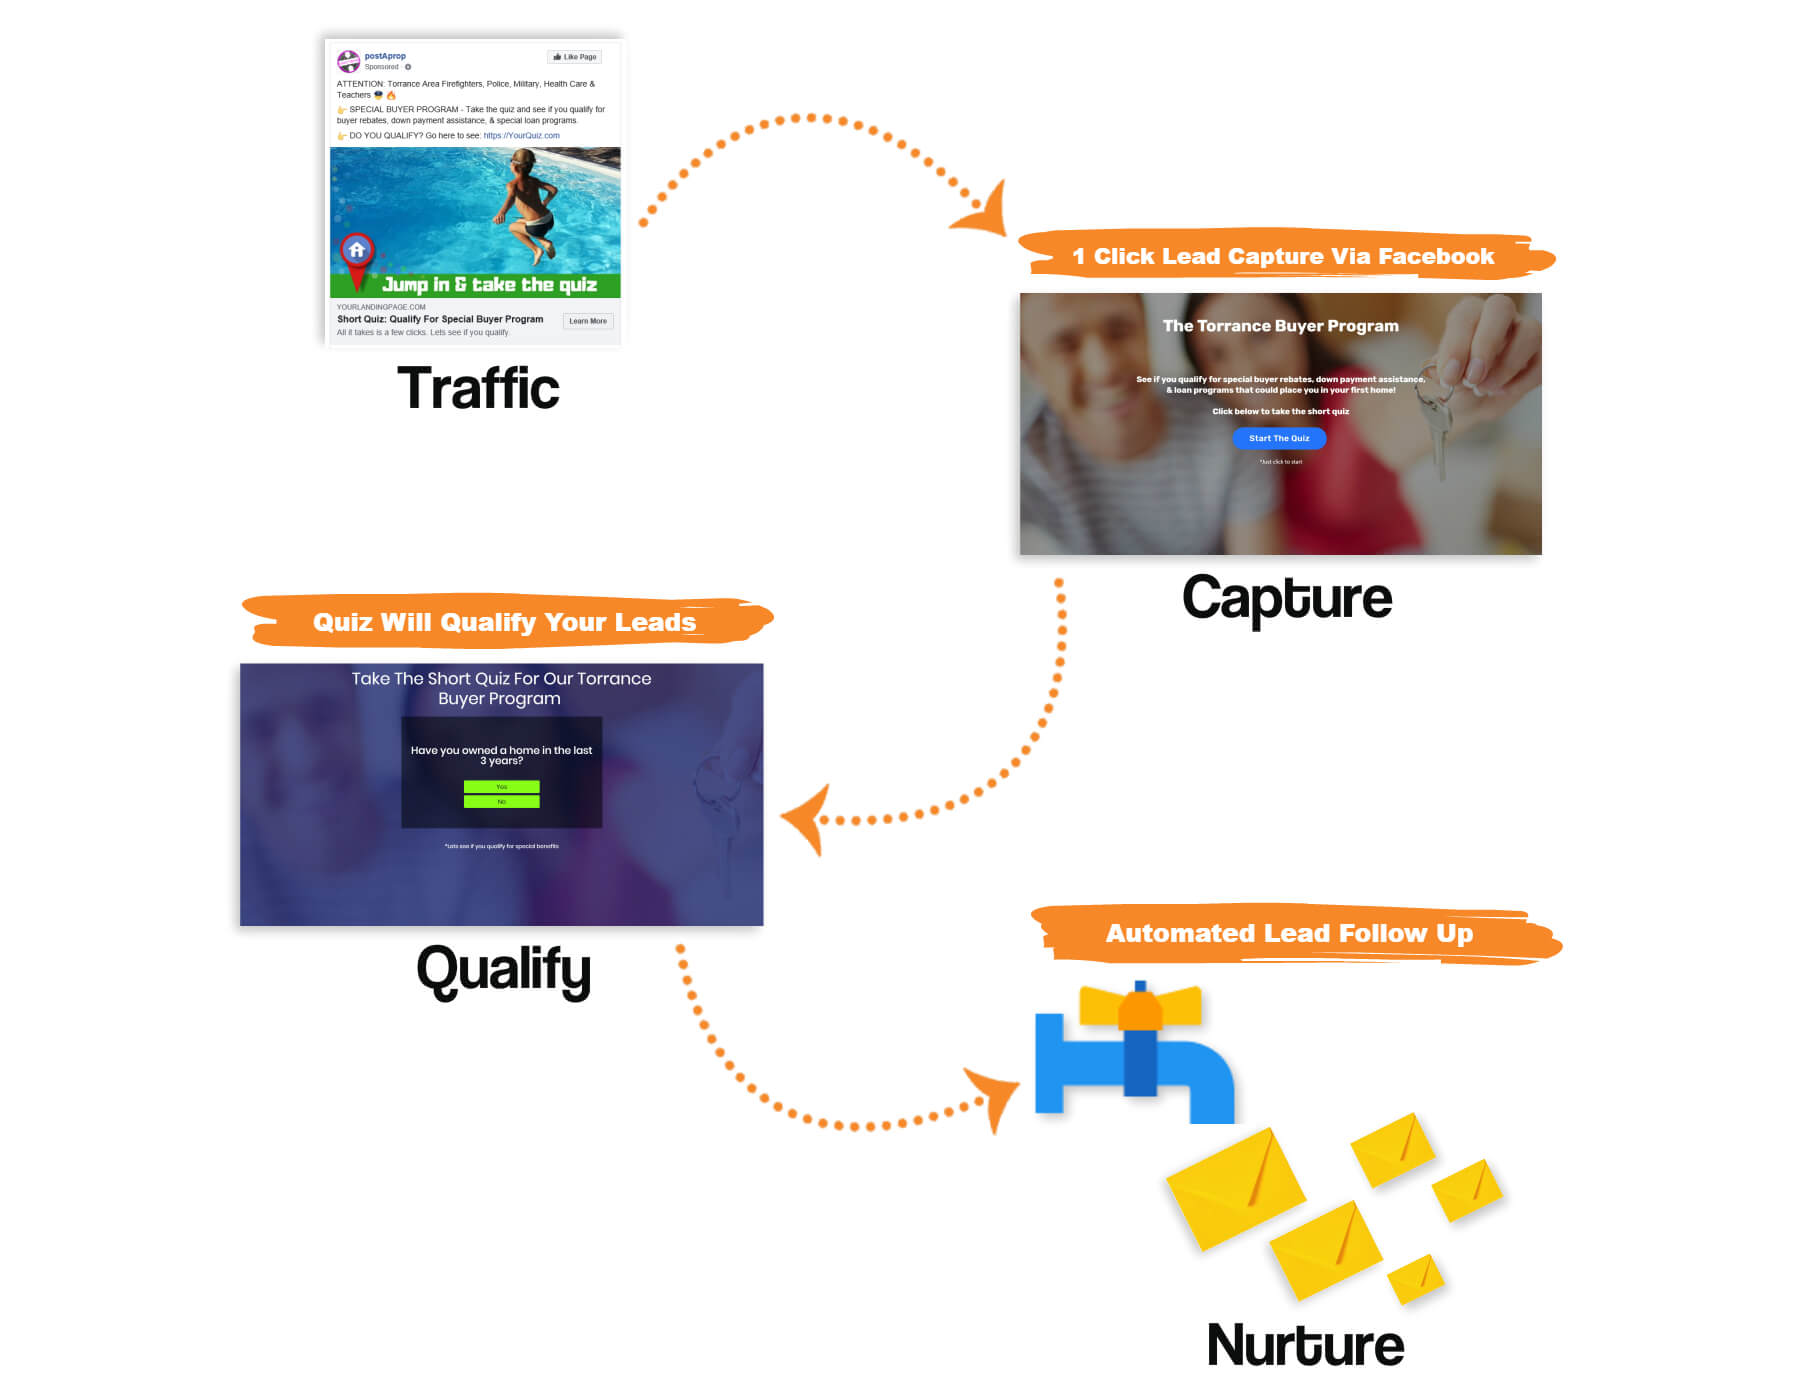 see how the lead flow works check out the live example below